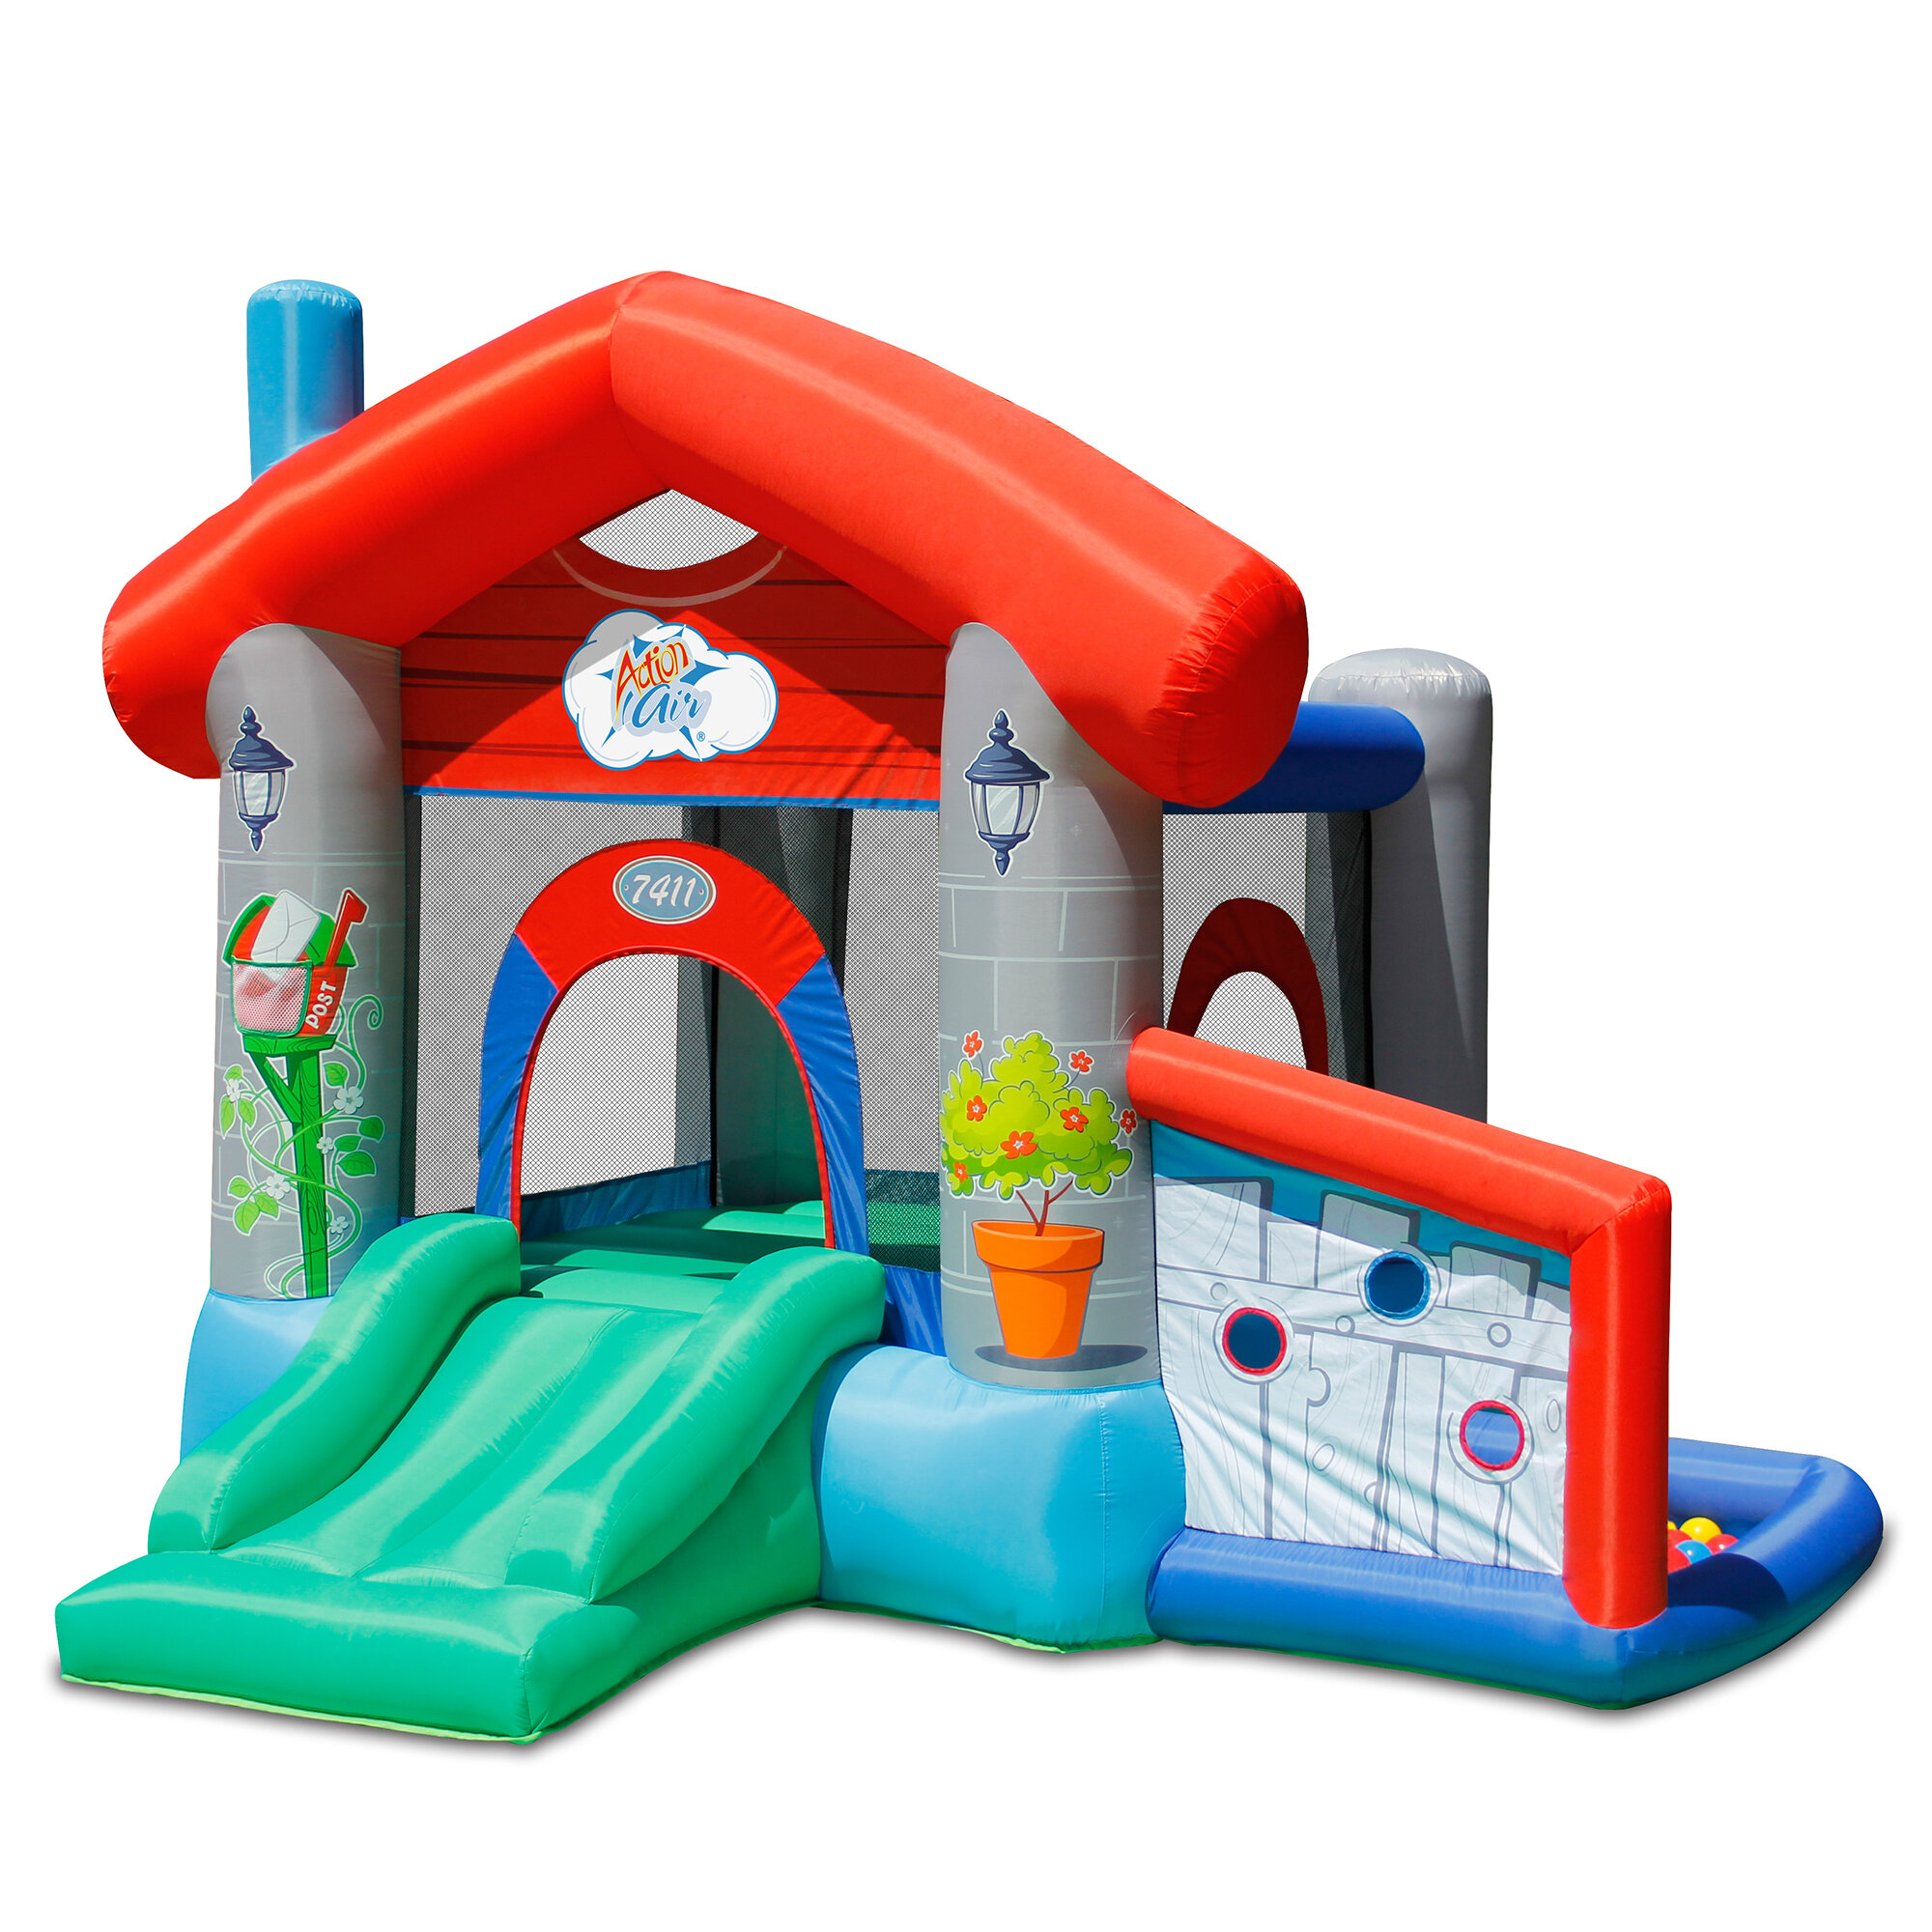 Bounce Houses & Inflatable Slides You'll Love in 2019 | Wayfair